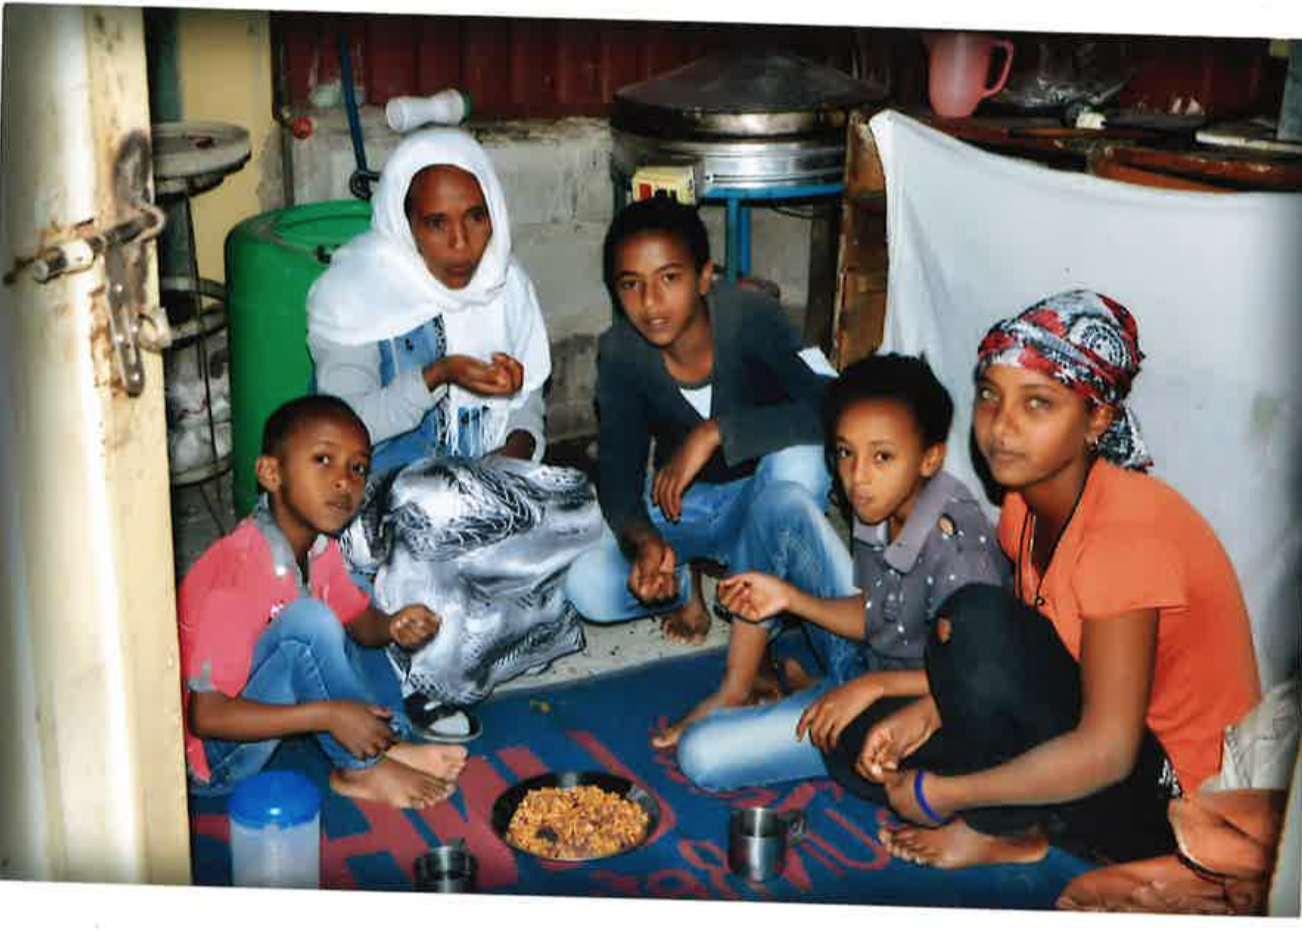 Eskinder, a refugee to the US, has been separated from his wife Meaza and four children - Lia, Medhanie, Mudayeefret and Meargh - for over a decade. Hello Vuelo is raising funds to reunite the family.